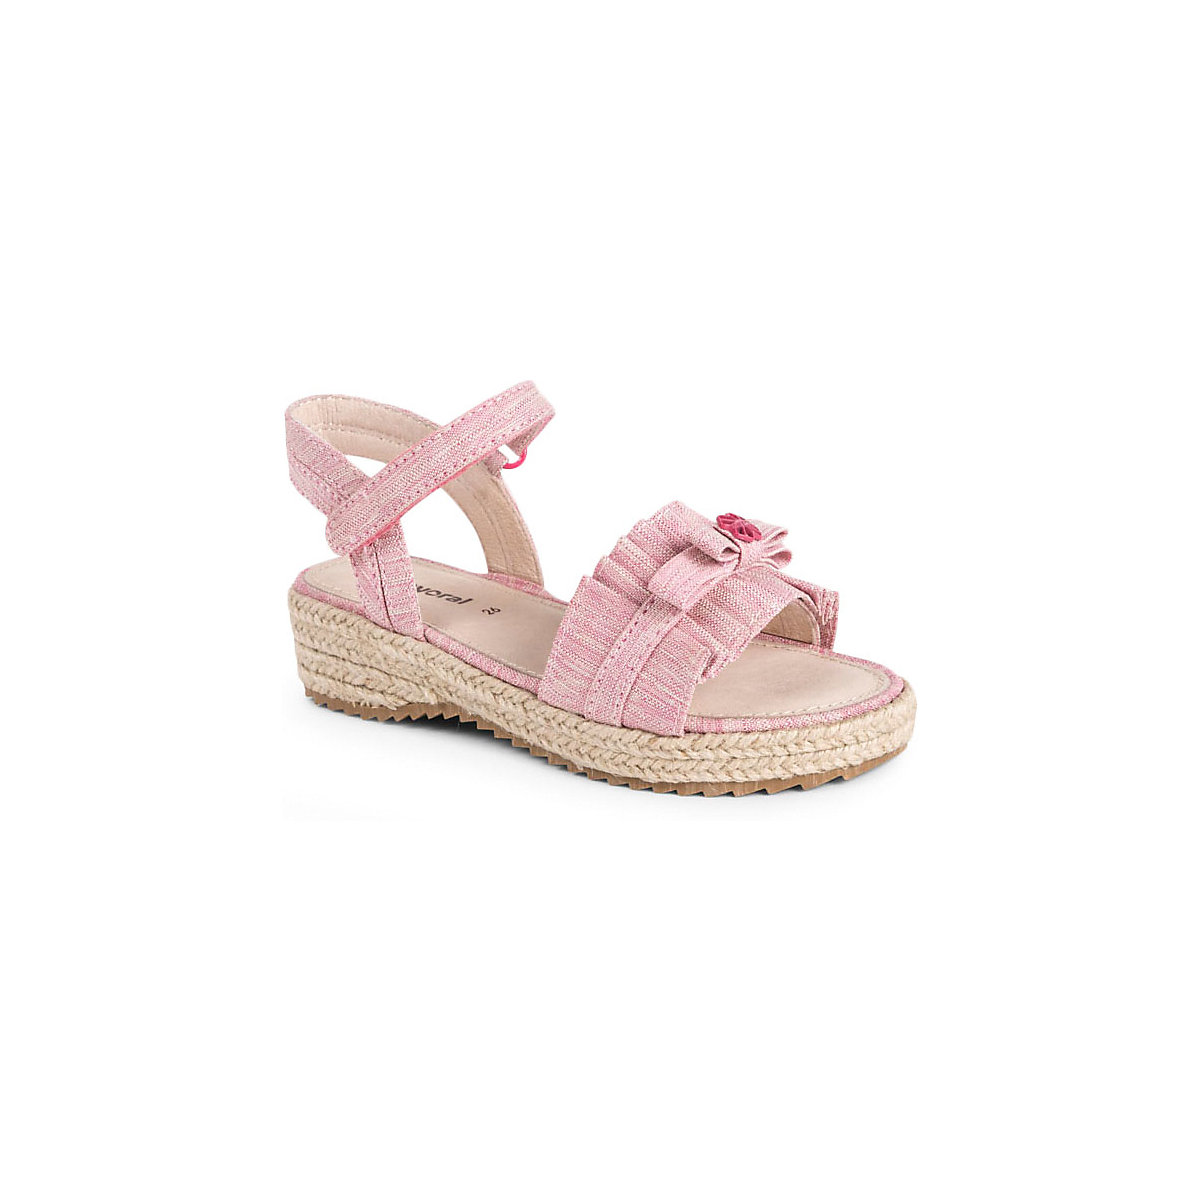 MAYORAL Sandals 10644038 children's shoes comfortable and light girls and boys sandals adidas af3921 sports and entertainment for boys